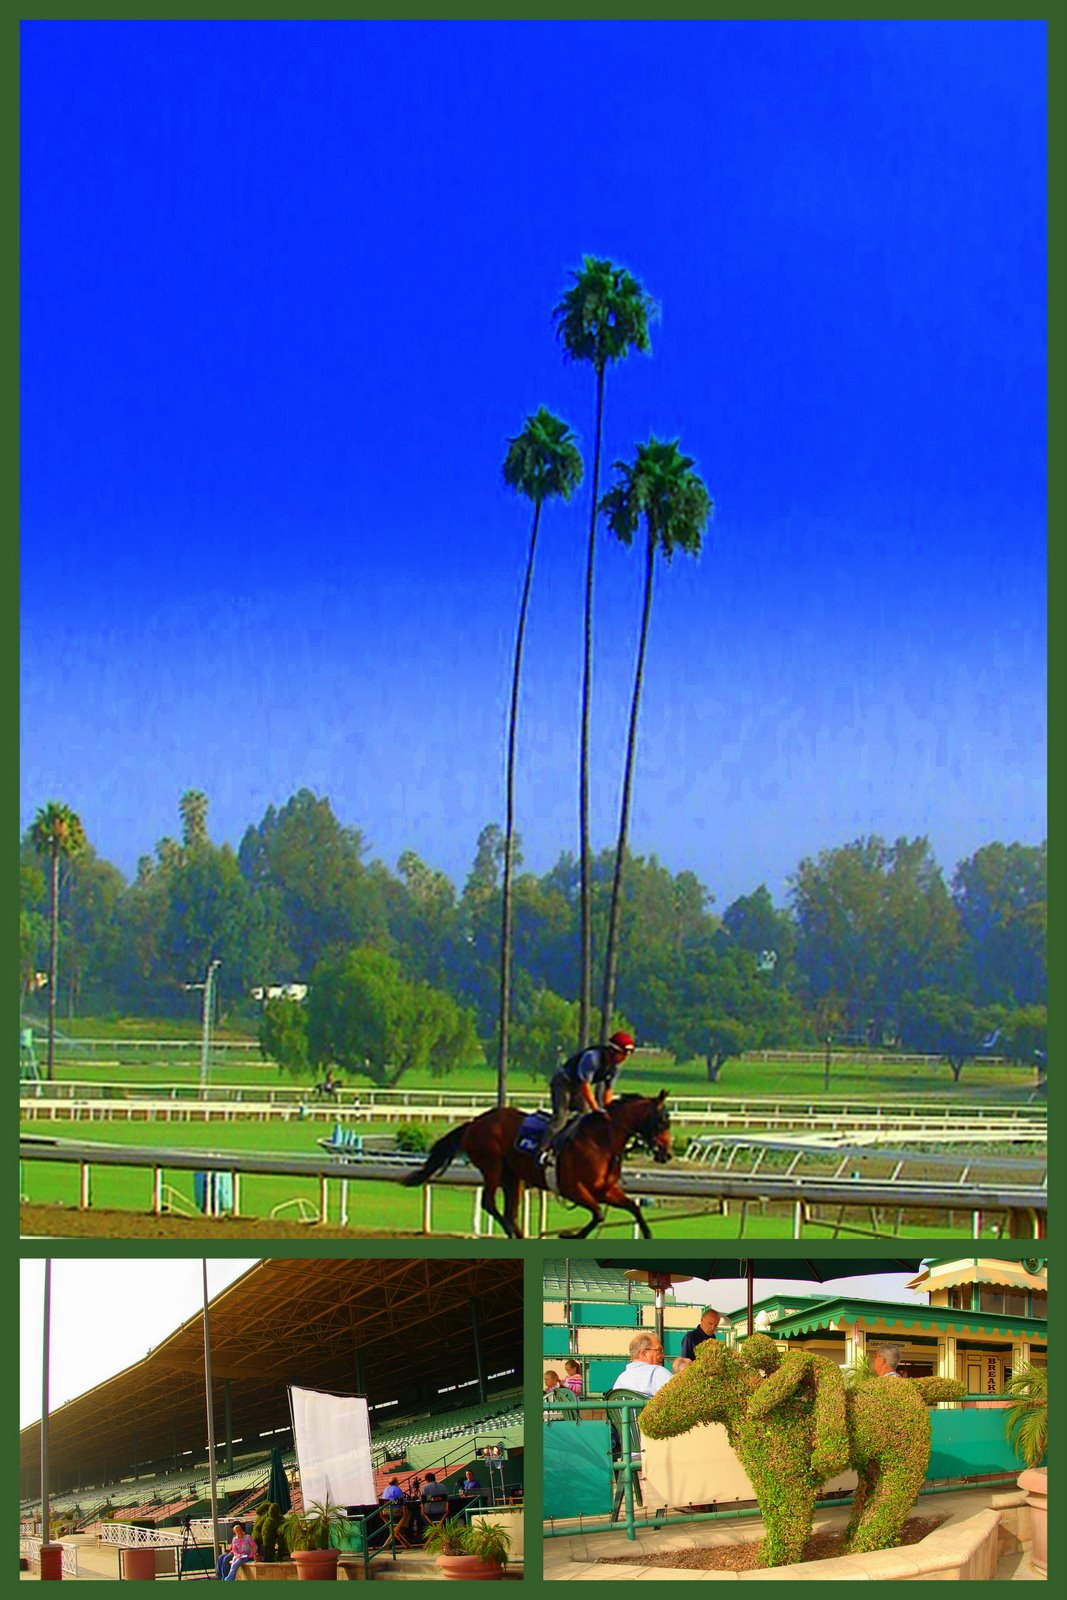 Expeditions By Tricia Santa Anita Park Expedition